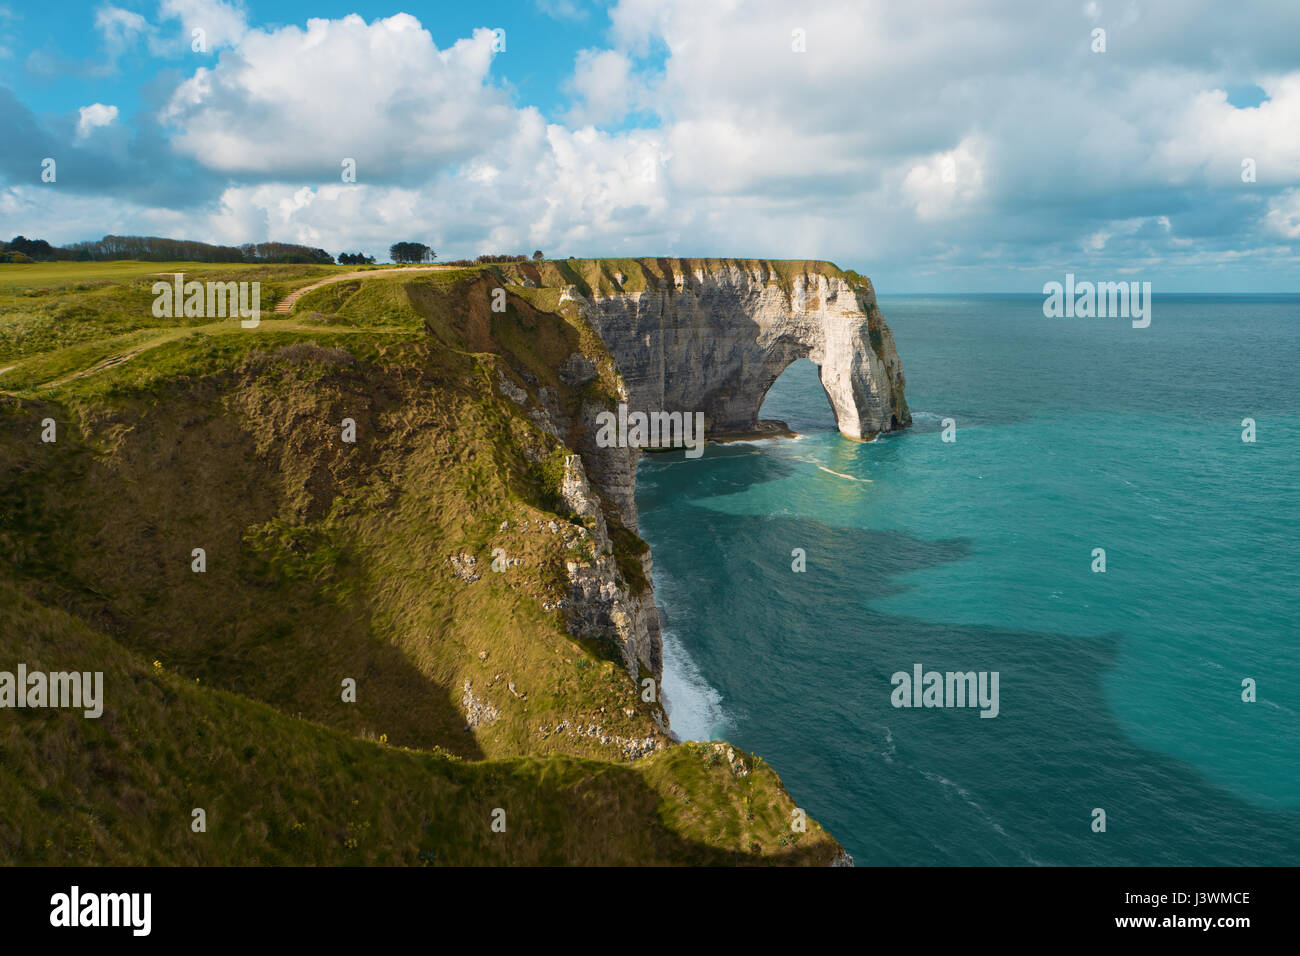 Cliffs and natural arch, Etretat, France, Europe. Beautiful european landscape. Popular landmark, famous destination - Stock Image